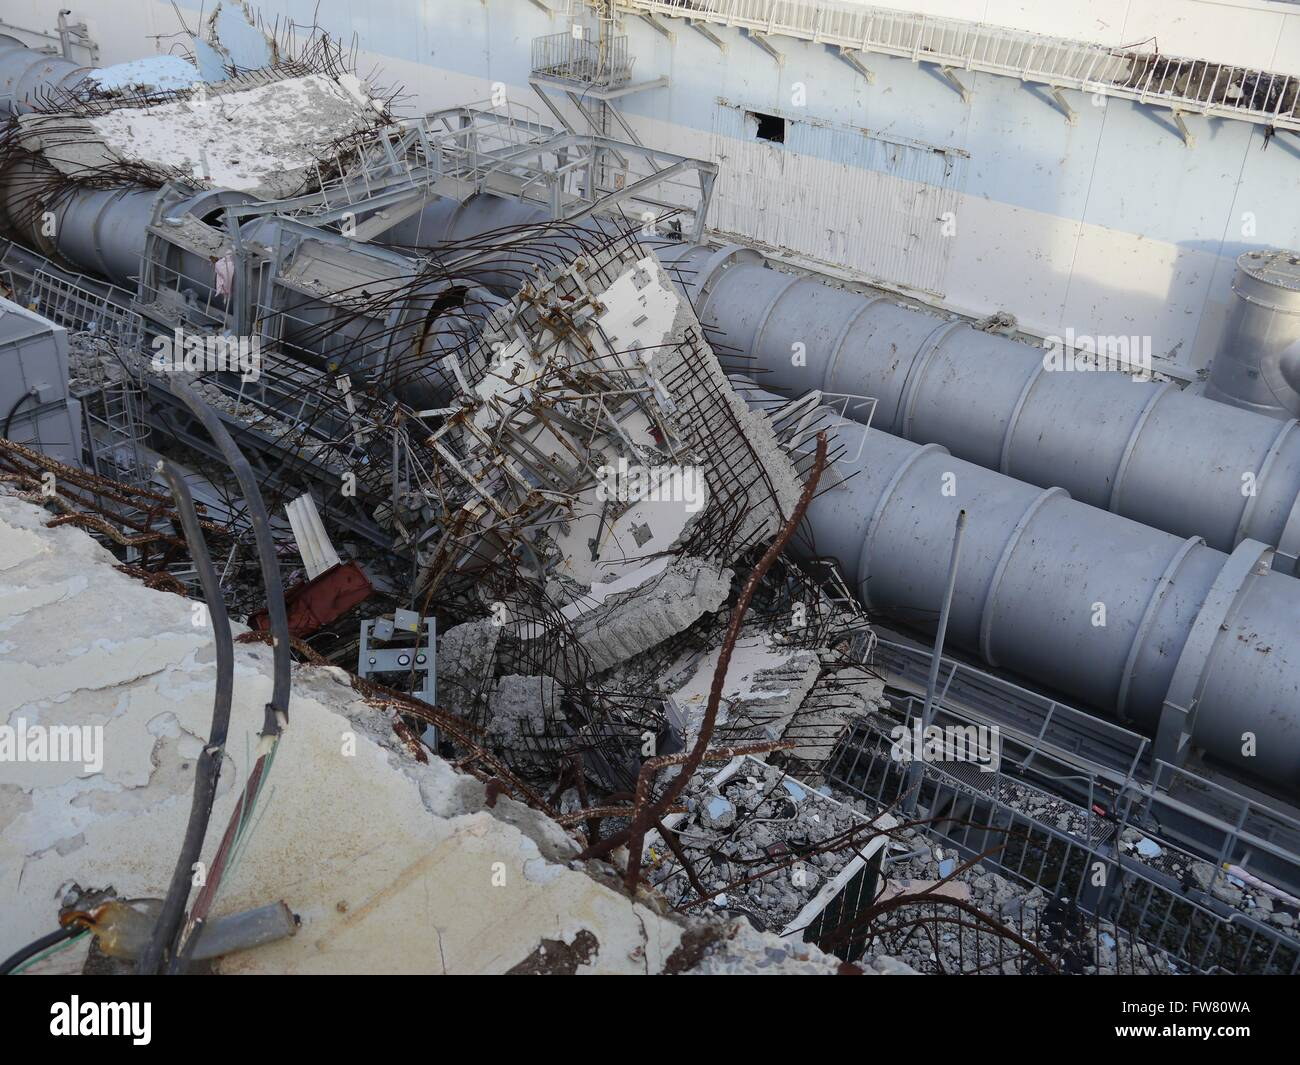 Debris in front of the remains of Unit 4 upper levels at the Fukushima Daiichi Nuclear Power Station December 18, - Stock Image